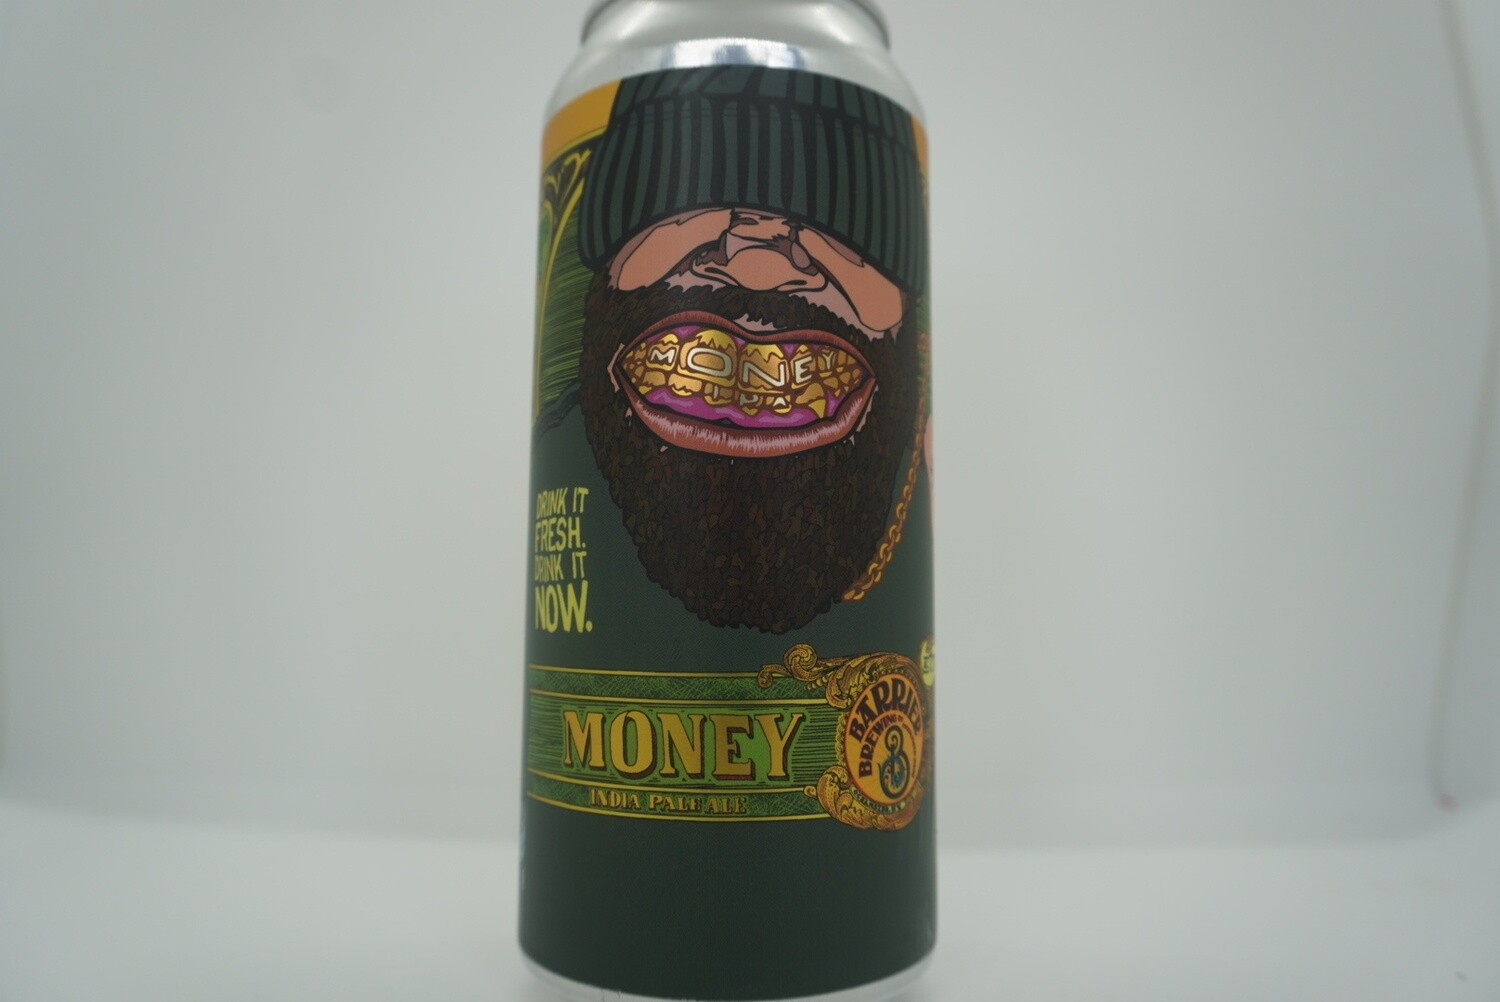 Barrier Brewing - Money - IPA - 7.3% ABV - 16oz Can